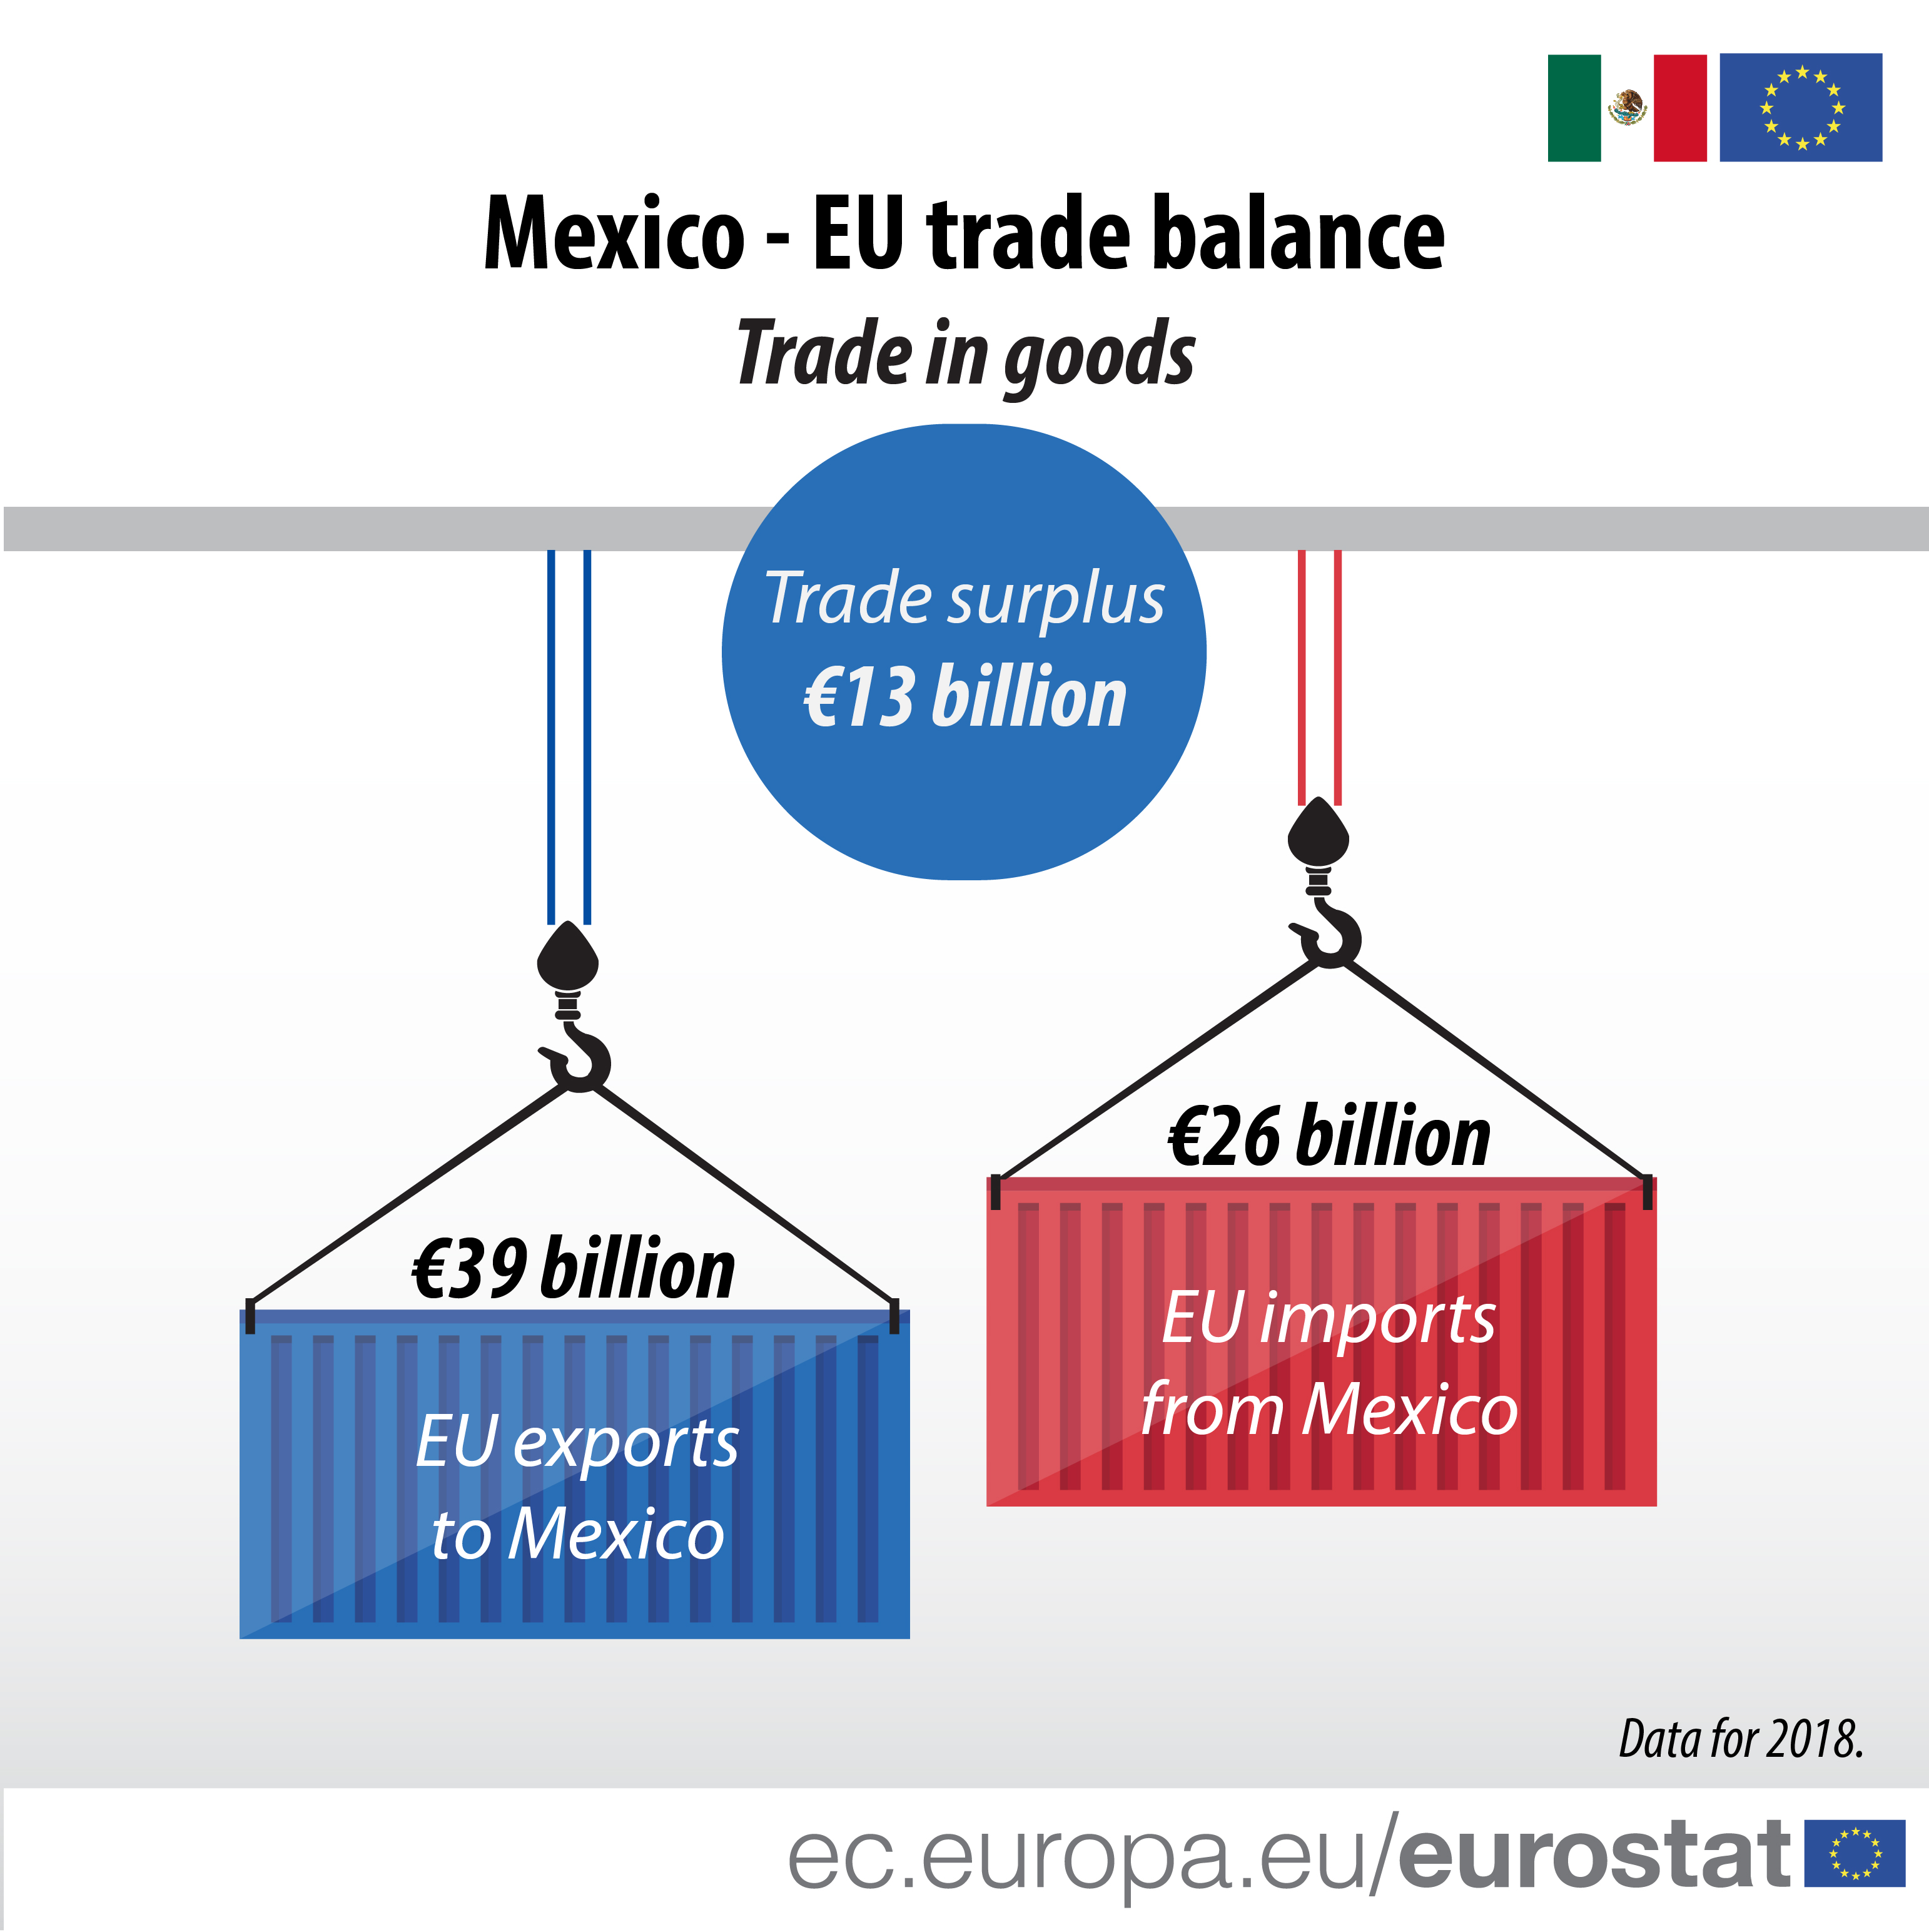 infographic illustrating the trade balance between EU and Mexico in 2018